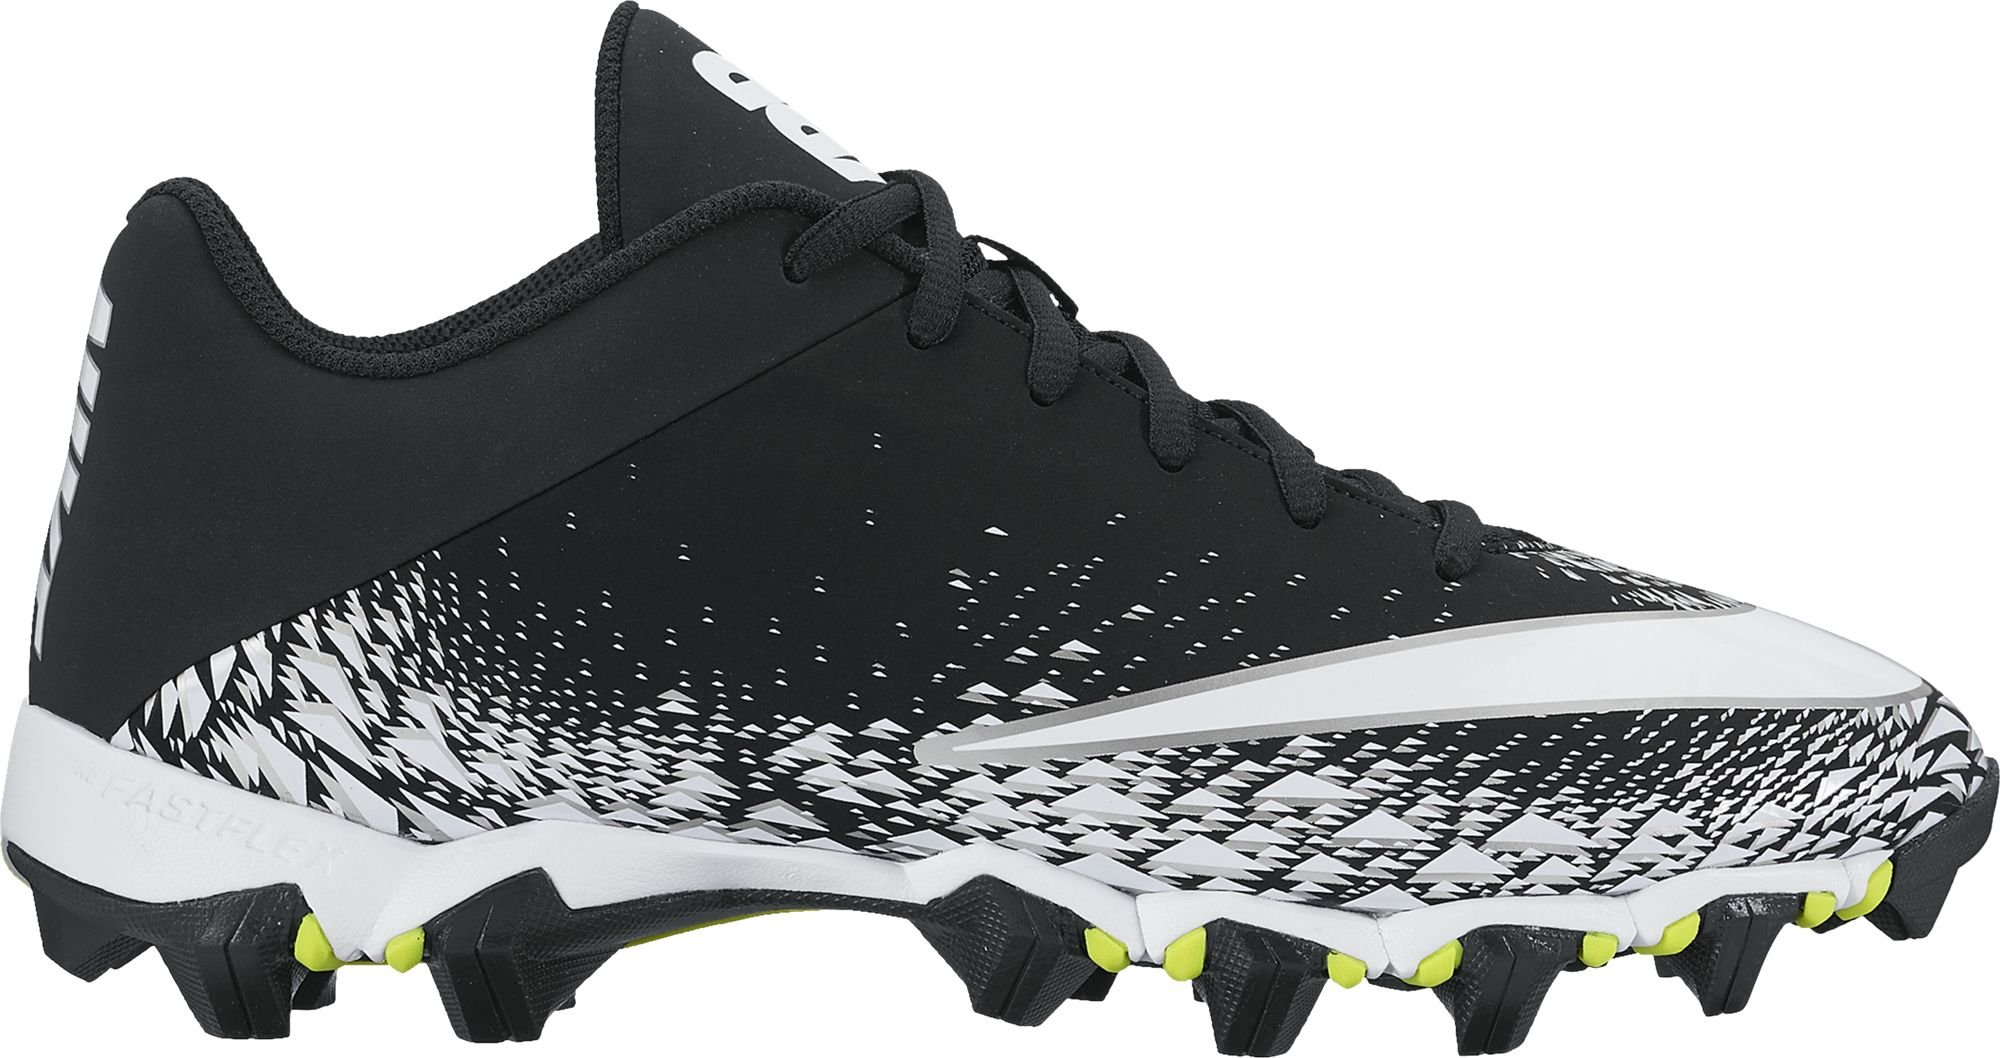 NIKE Men's Vapor Shark 2 Football Cleat Black/White/Metallic Silver Size 9 M US